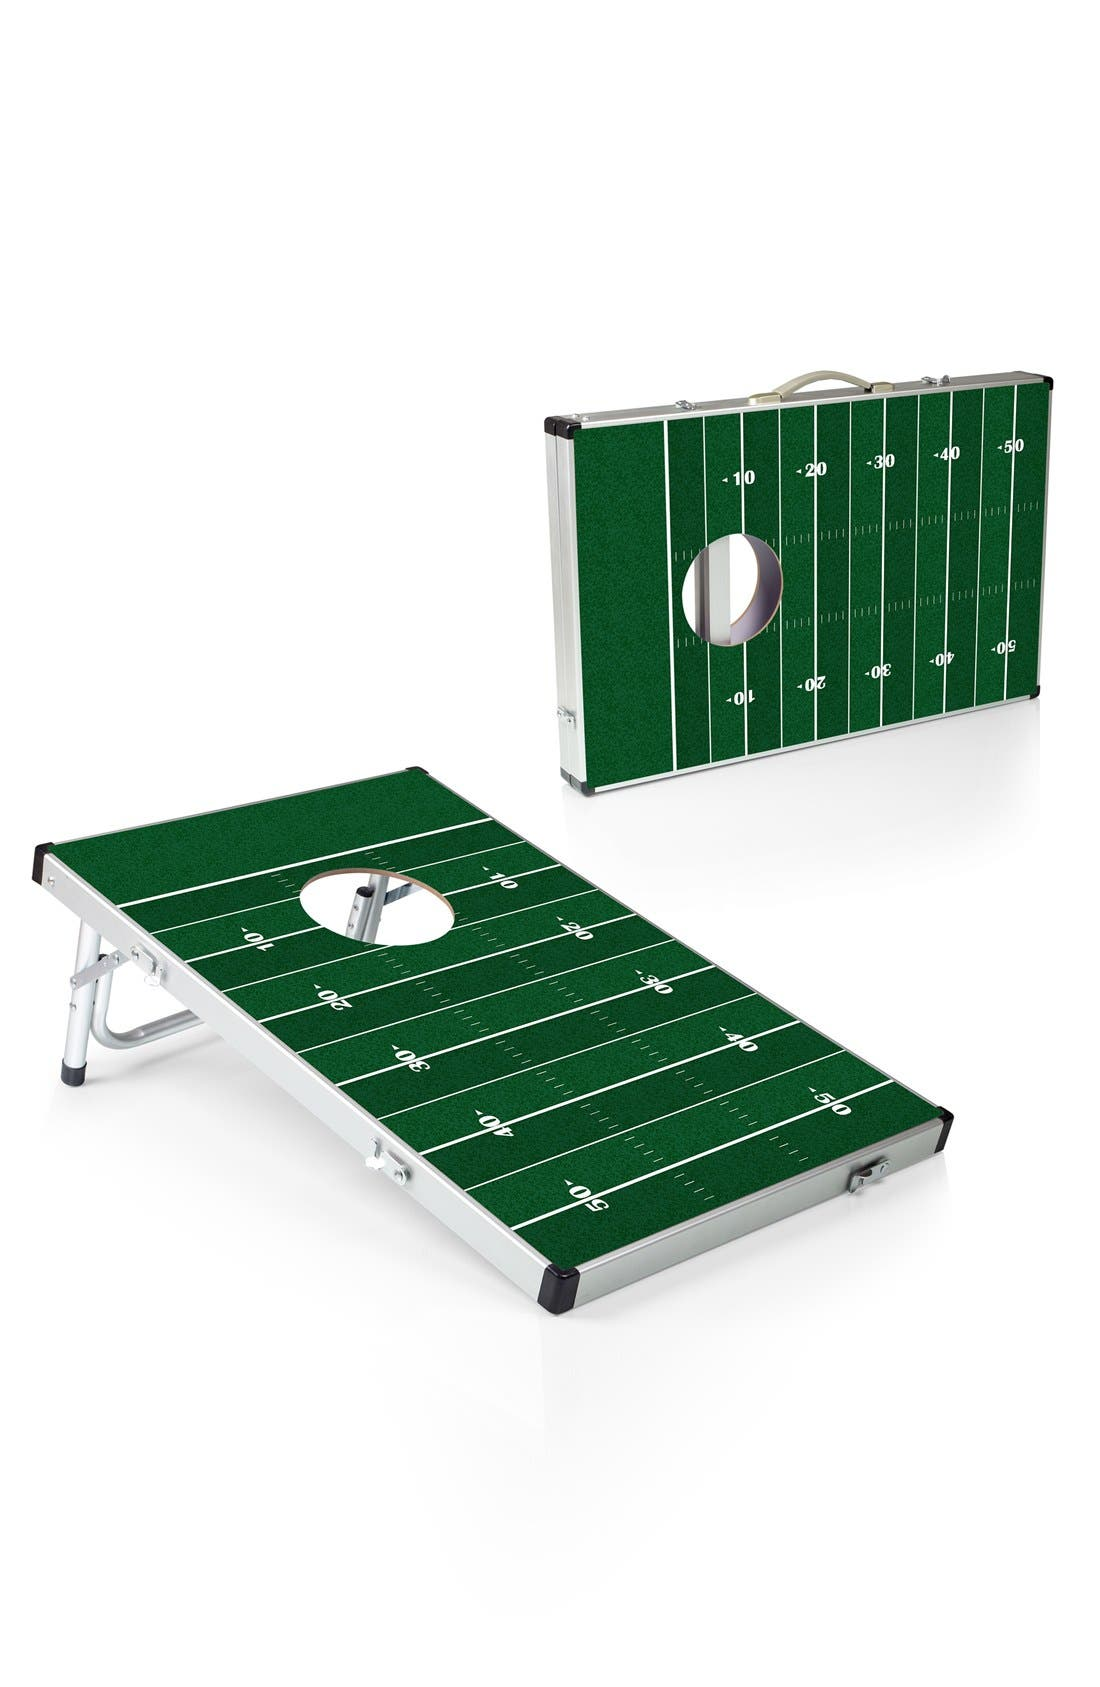 'Football' Bean Bag Toss Game,                             Alternate thumbnail 3, color,                             Green